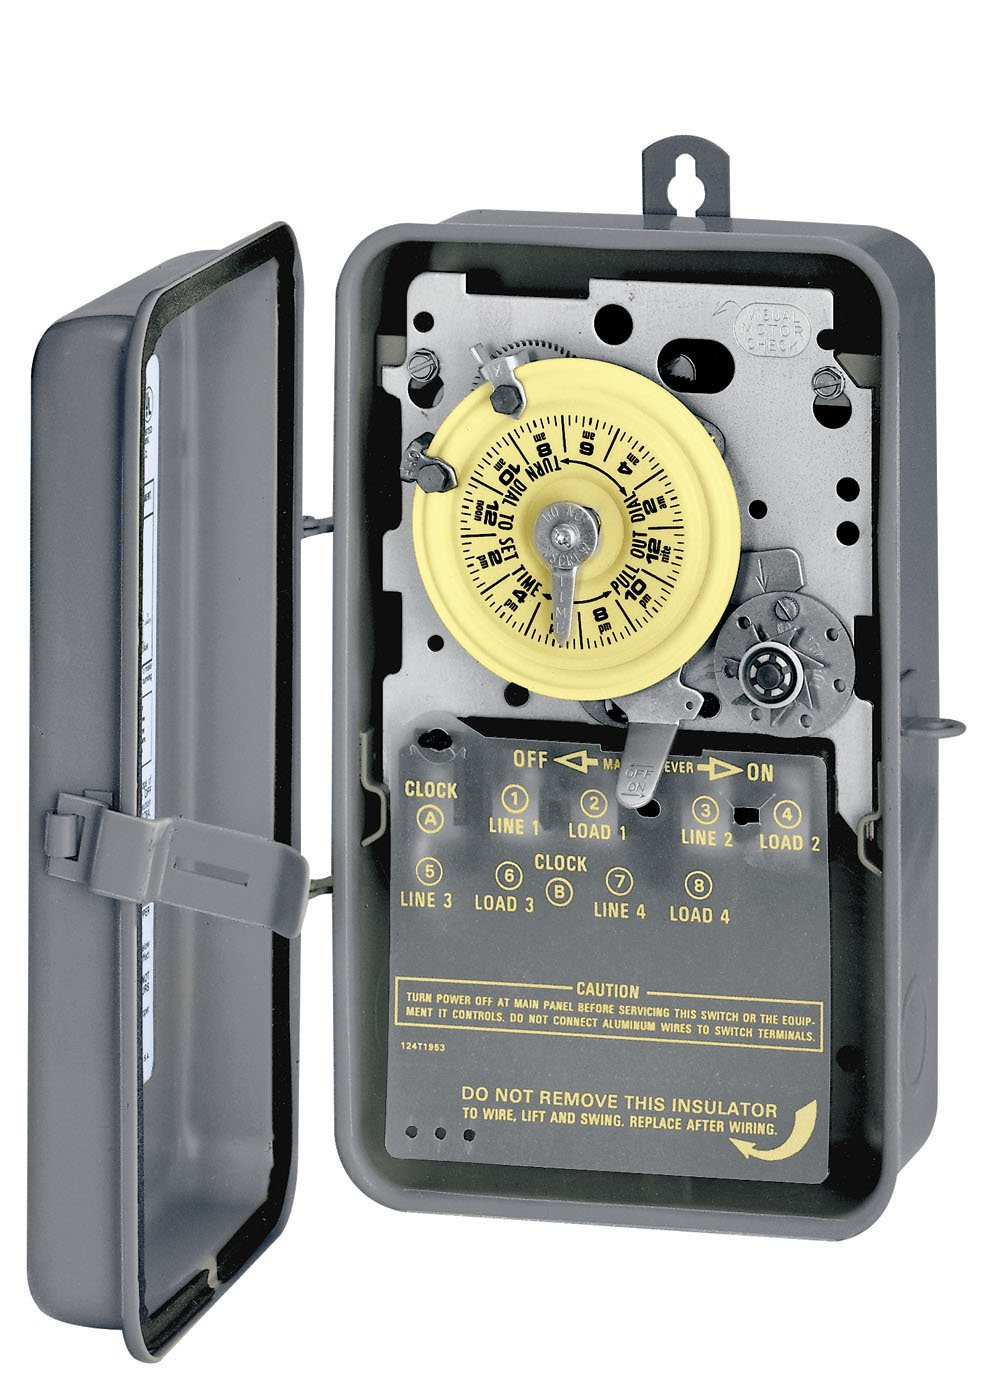 Intermatic T1471BR 4PST 24 Hour 125-Volt Time Switch with 3R Steel Case